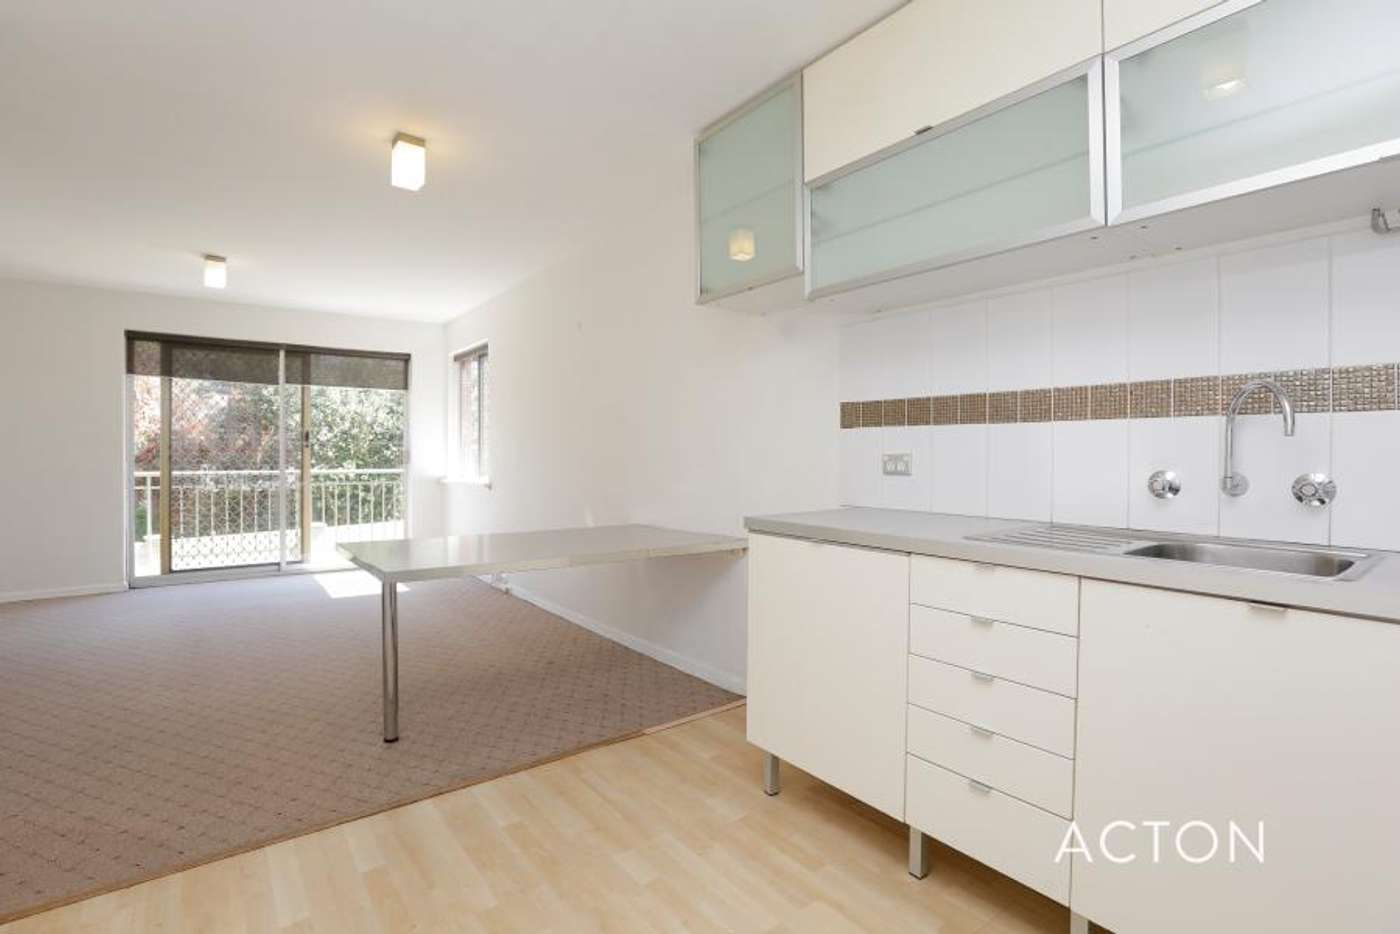 Main view of Homely apartment listing, 79/6 Manning Terrace, South Perth WA 6151